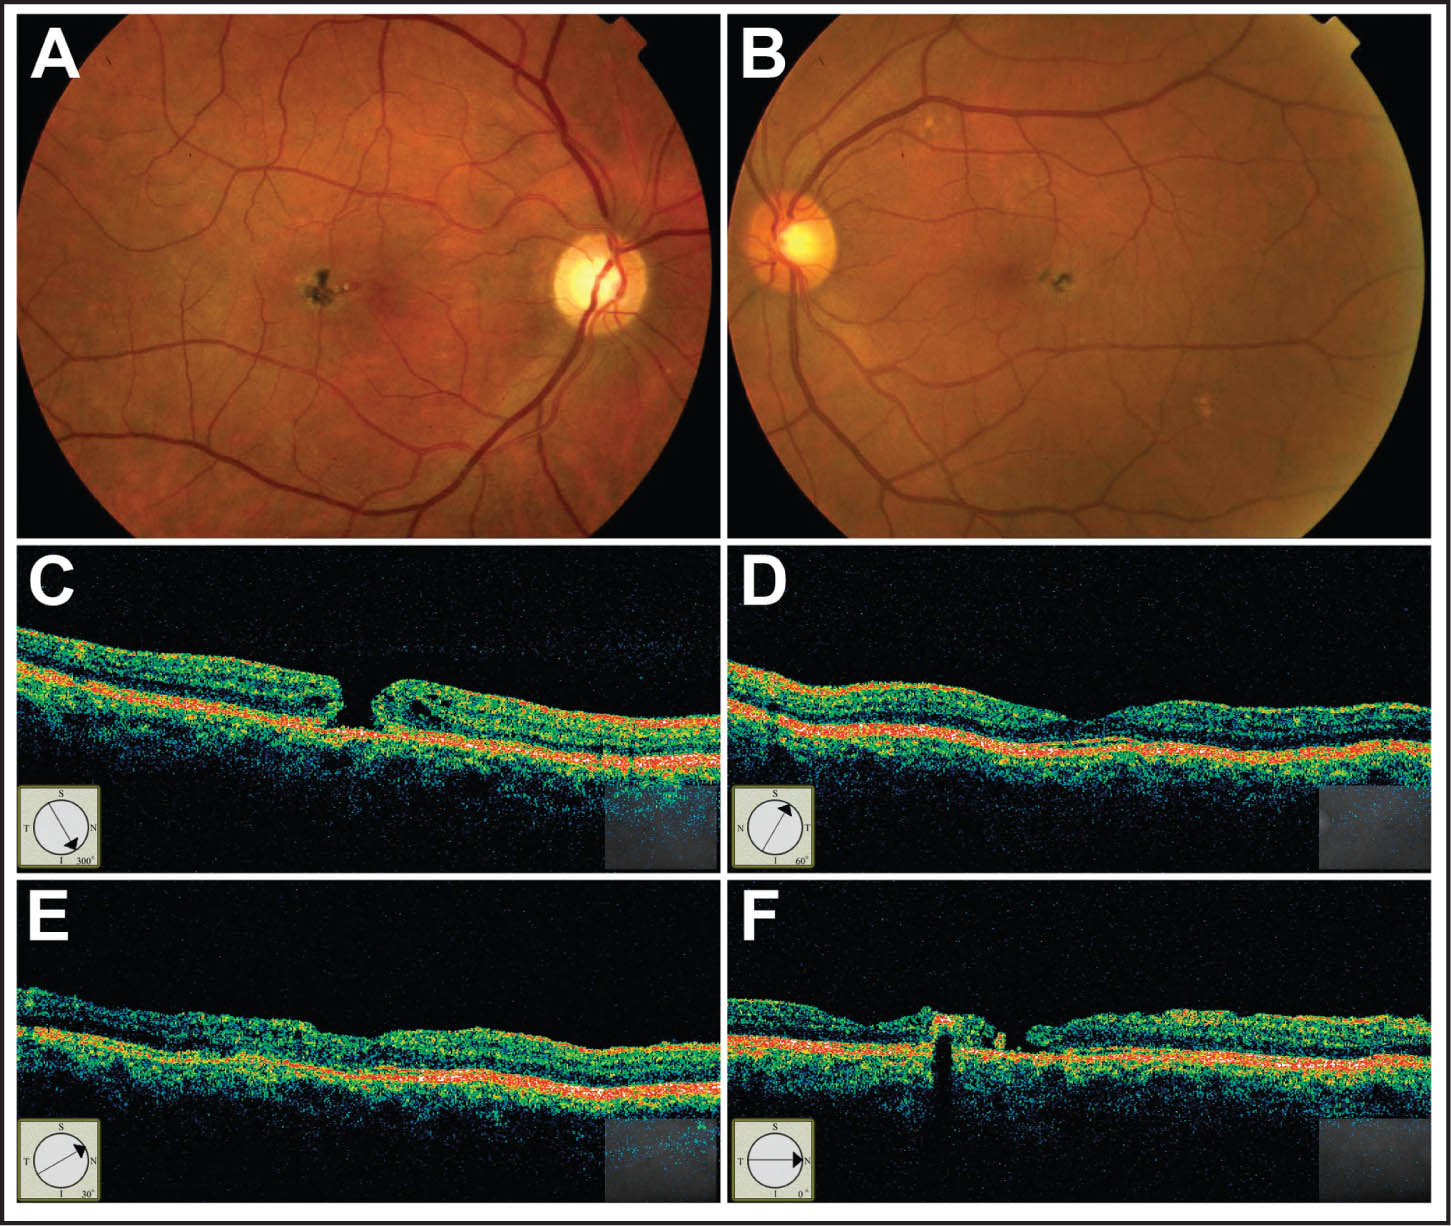 A 67-Year-Old Man with Full-Thickness Macular Hole and IMT Type 2 Presented with a Recent Decrease of Vision in His Right Eye. (A and B) Fundus Photograph Shows Grayish Opacification Around the Fovea with Pigment Clumping Temporal to the Fovea. (C) Stratus OCT III (Carl Zeiss Meditec, Dublin, CA) Showed a Small Full-Thickness Macular Hole in the Right Eye; Visual Acuity Was 20/70. (D) Stratus OCT Shows Normal Foveal Appearance in the Left Eye. (E) Stratus OCT Radial Scan (representative of 5/6 Radial Scans) Taken 13 Months After Surgery Shows Restored Retinal Anatomy. The Inner-Outer Segment Junction of Photoreceptors Layer Is Interrupted Centrally Indicating Photoreceptor Loss. (F) Horizontal Radial Scan of Stratus OCT Taken 13 Months After Surgery Demonstrates a Prominent Intraretinal Pigment Clump with Shadowing and a Small Full-Thickness Retinal Discontinuity Defect.